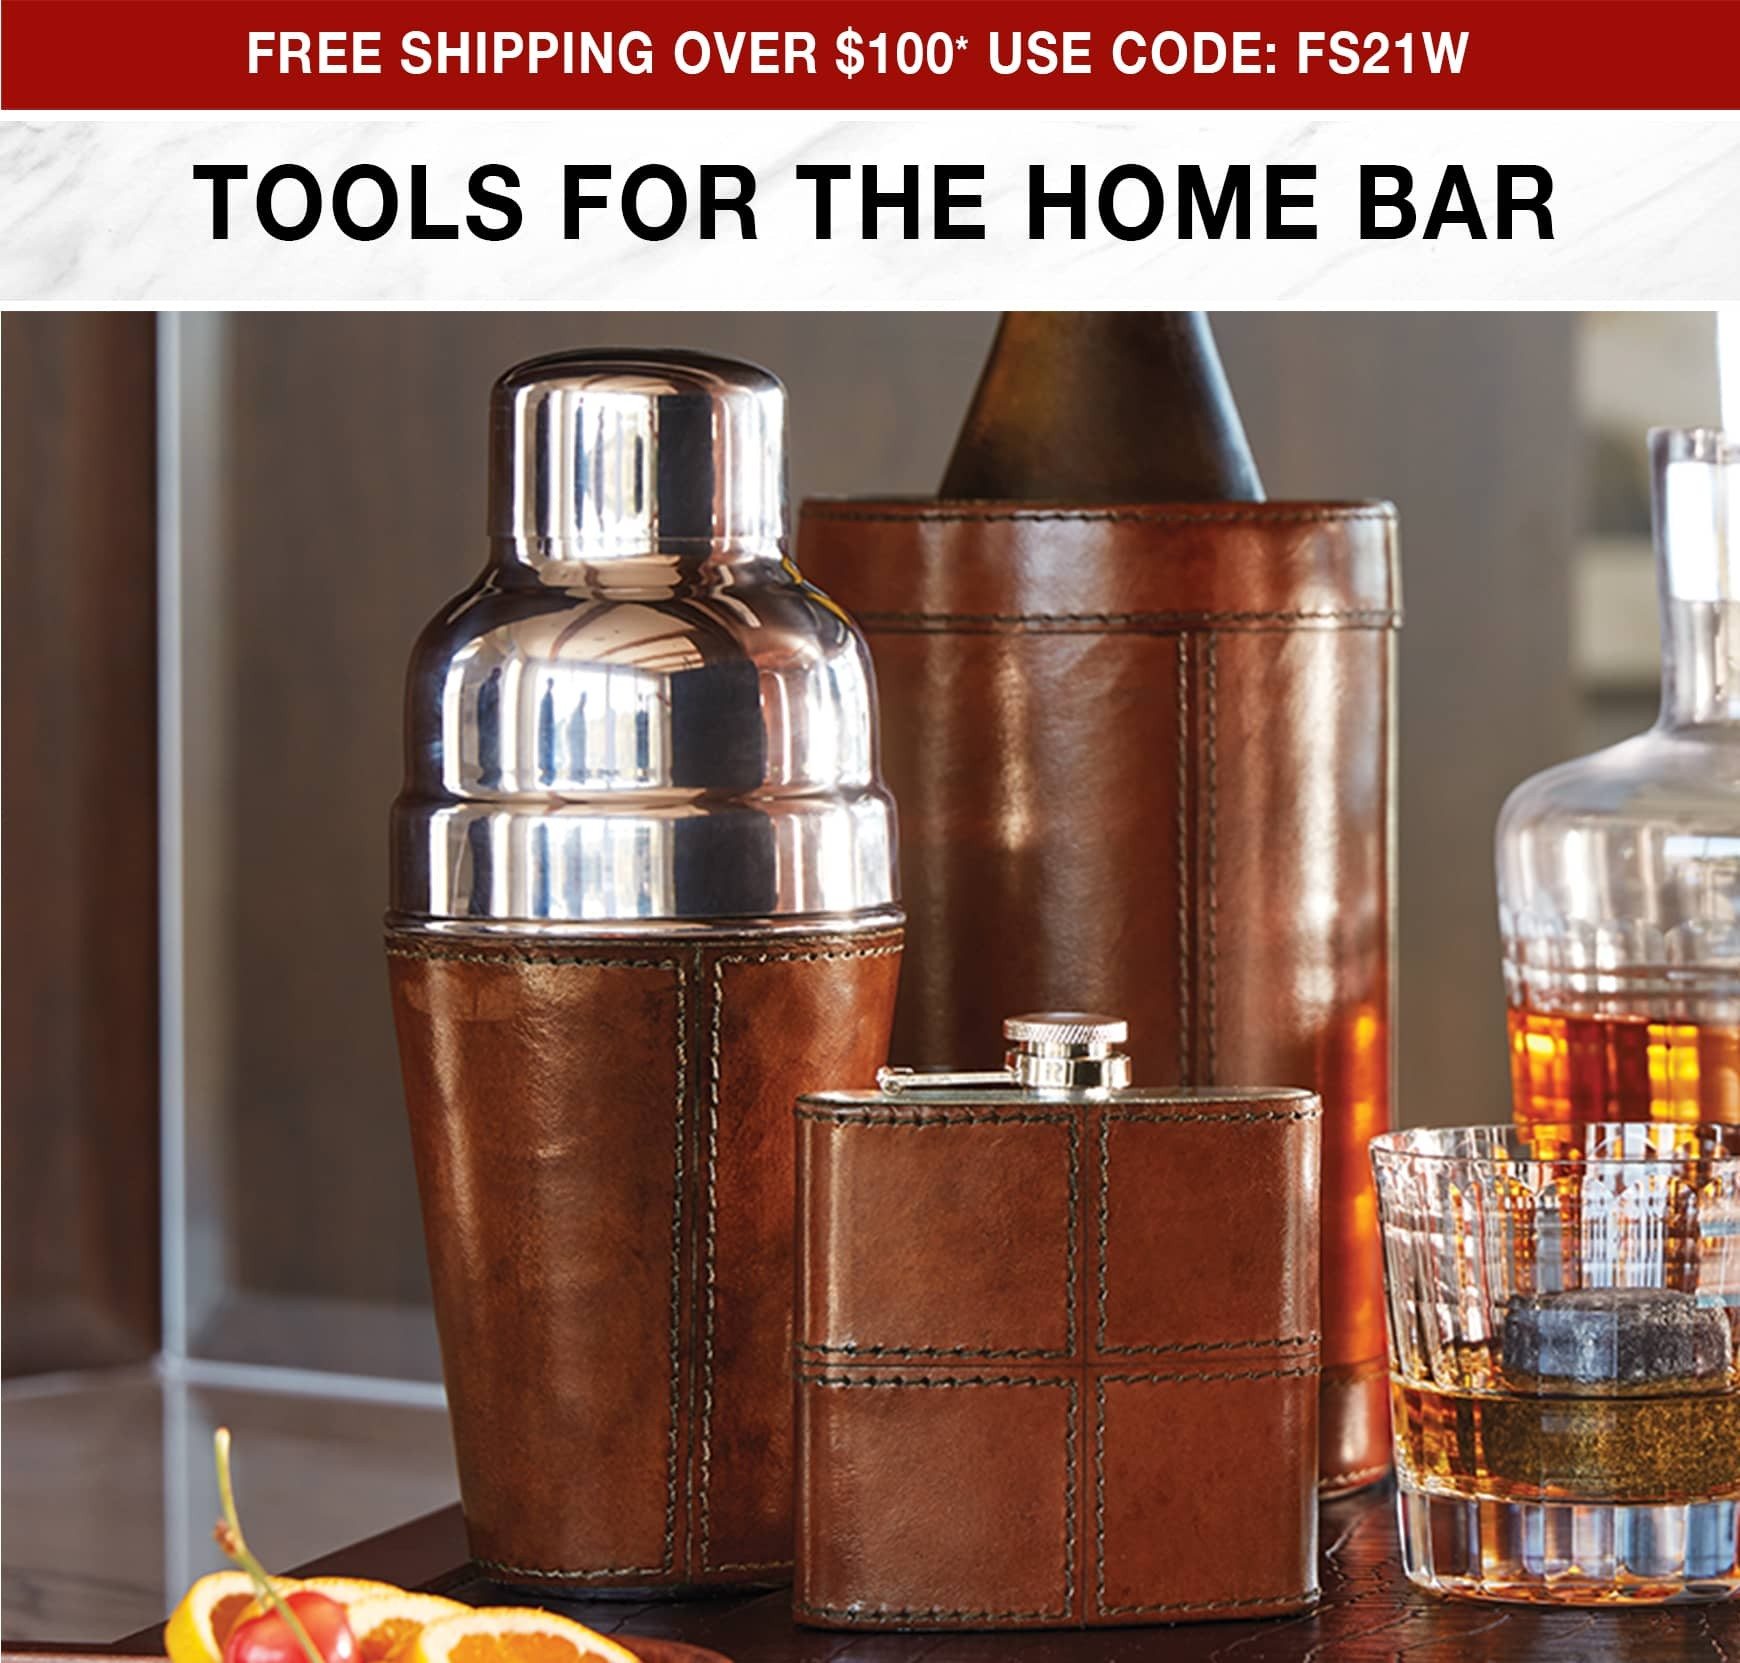 Tools for the Home Bar - Free Shipping Over $100* Use Code FS20W